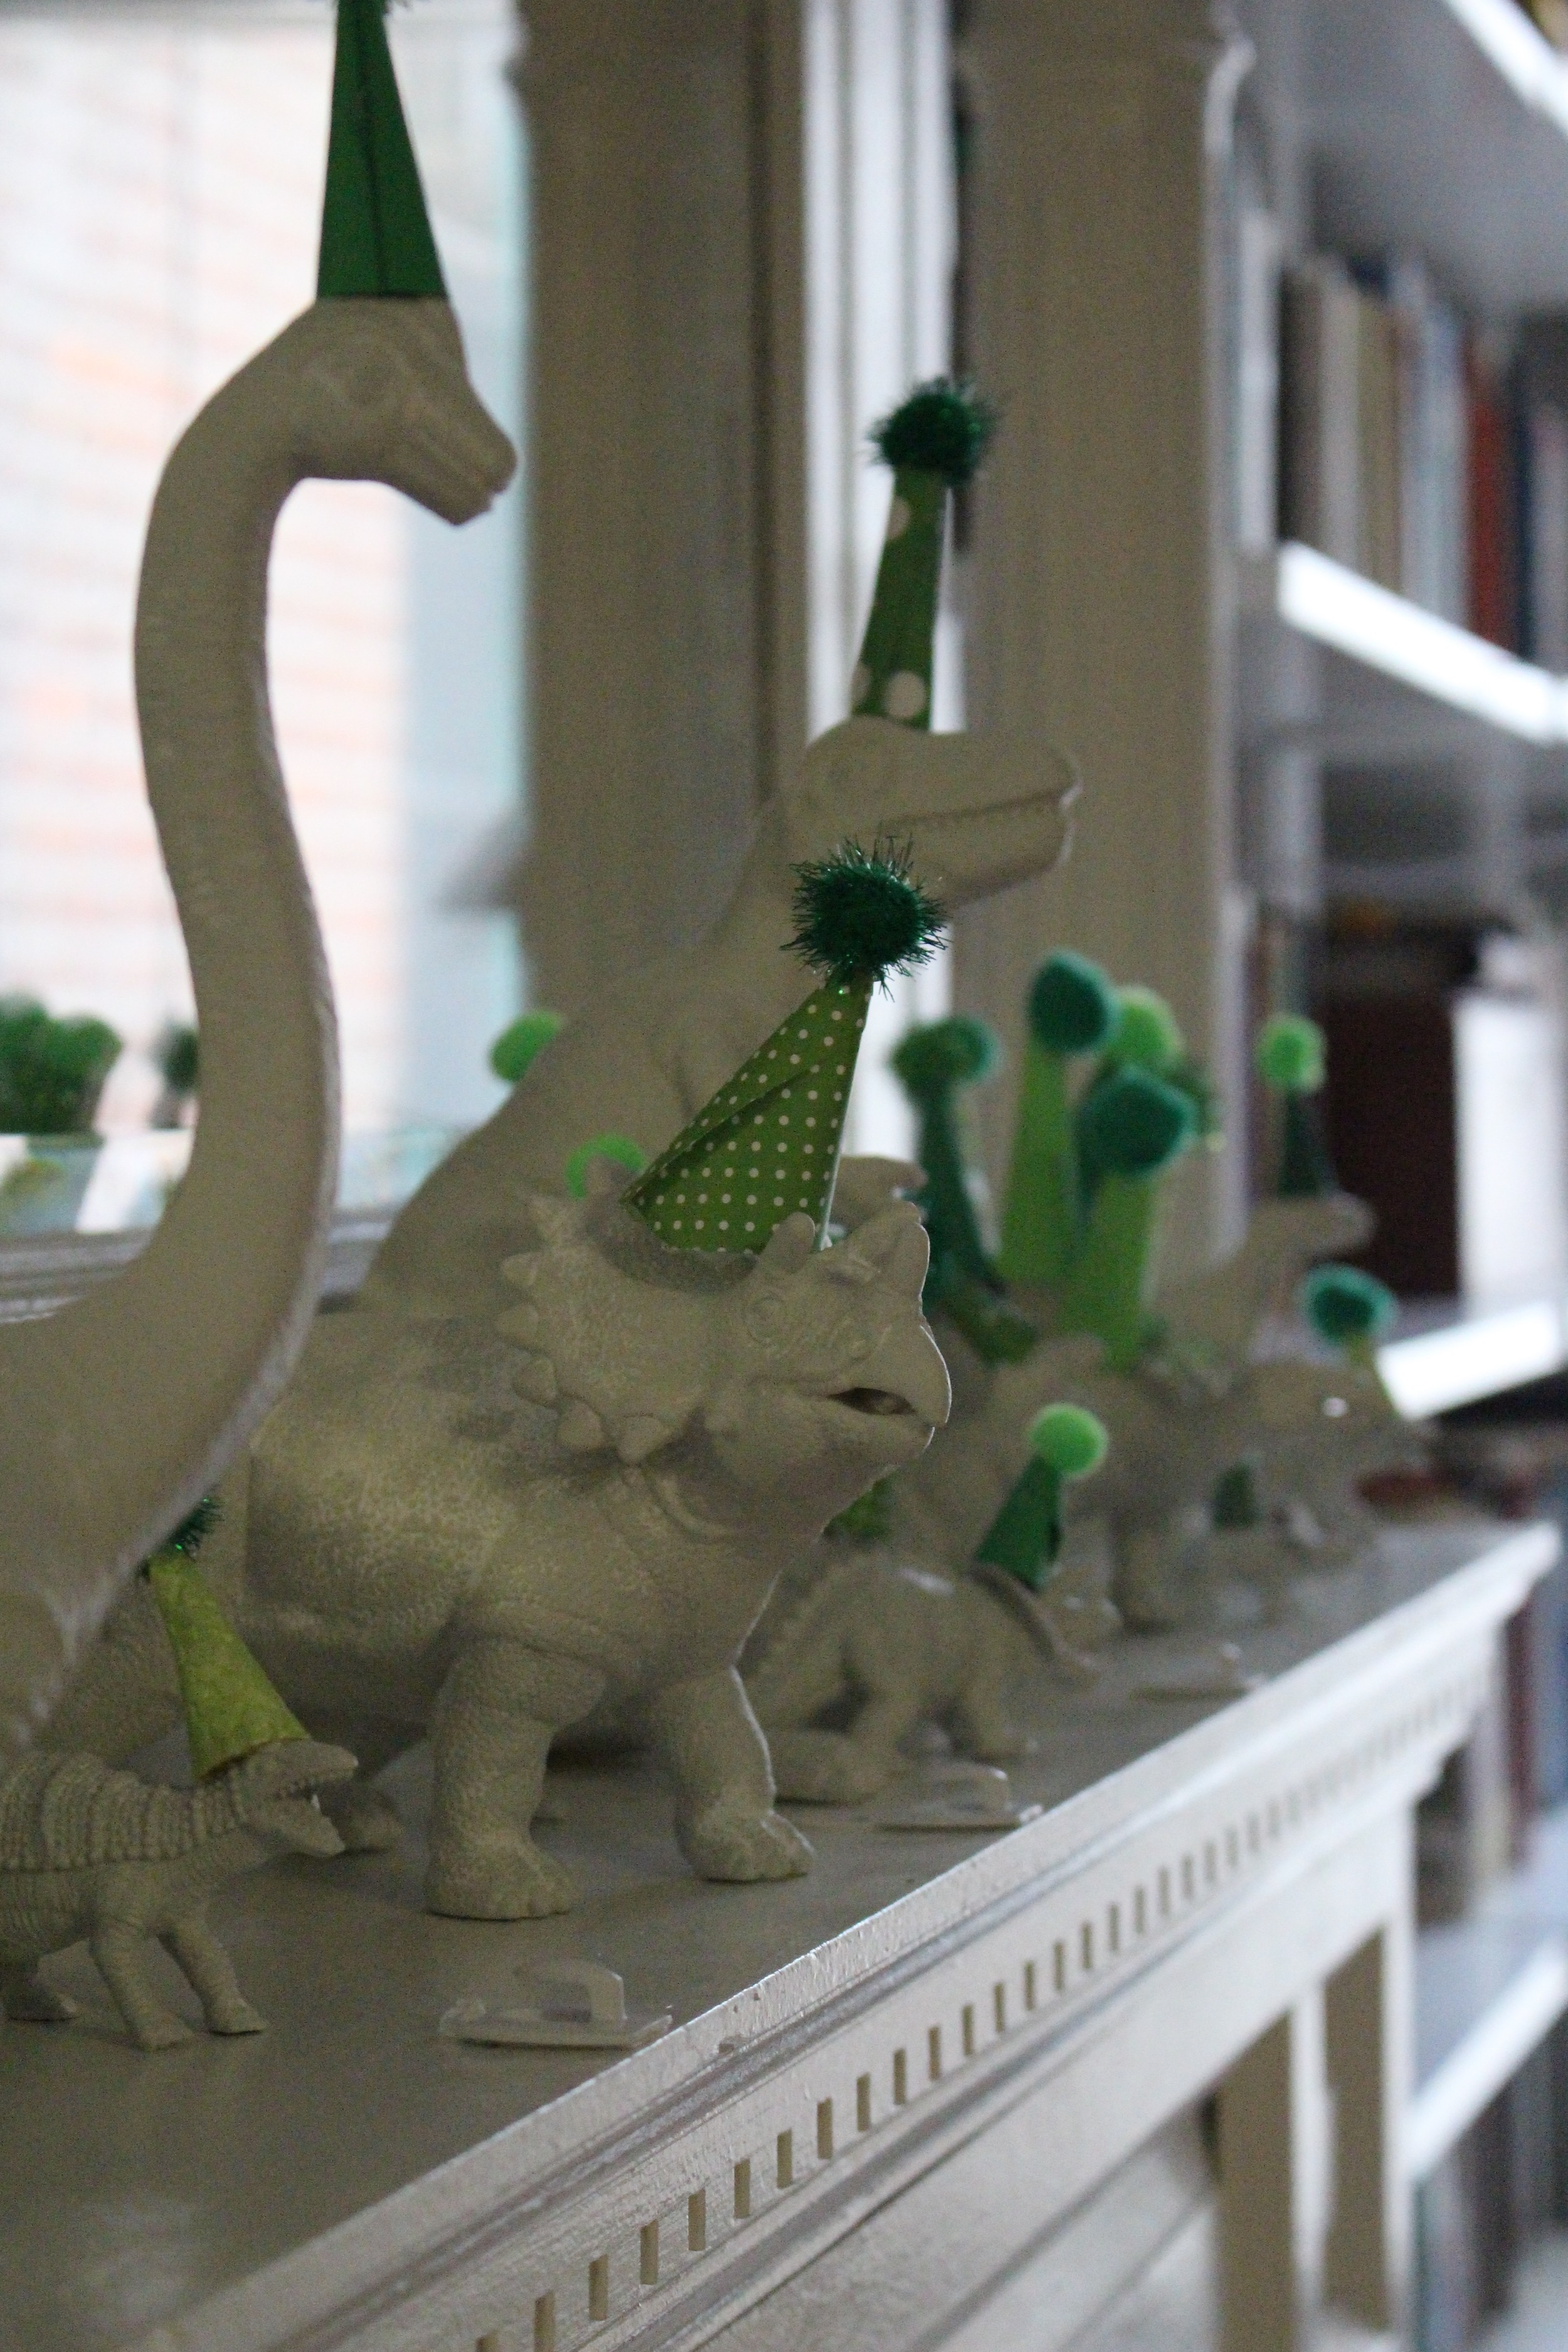 Plastic dinosaur toys from Amazon; spray-painted white; hot-glued on tiny party hats made from paper and poms from Michaels. #Moderdino #dinosaurs #firstbirthday #dinobirthdayparty #kidsbirthday #meandthemoose